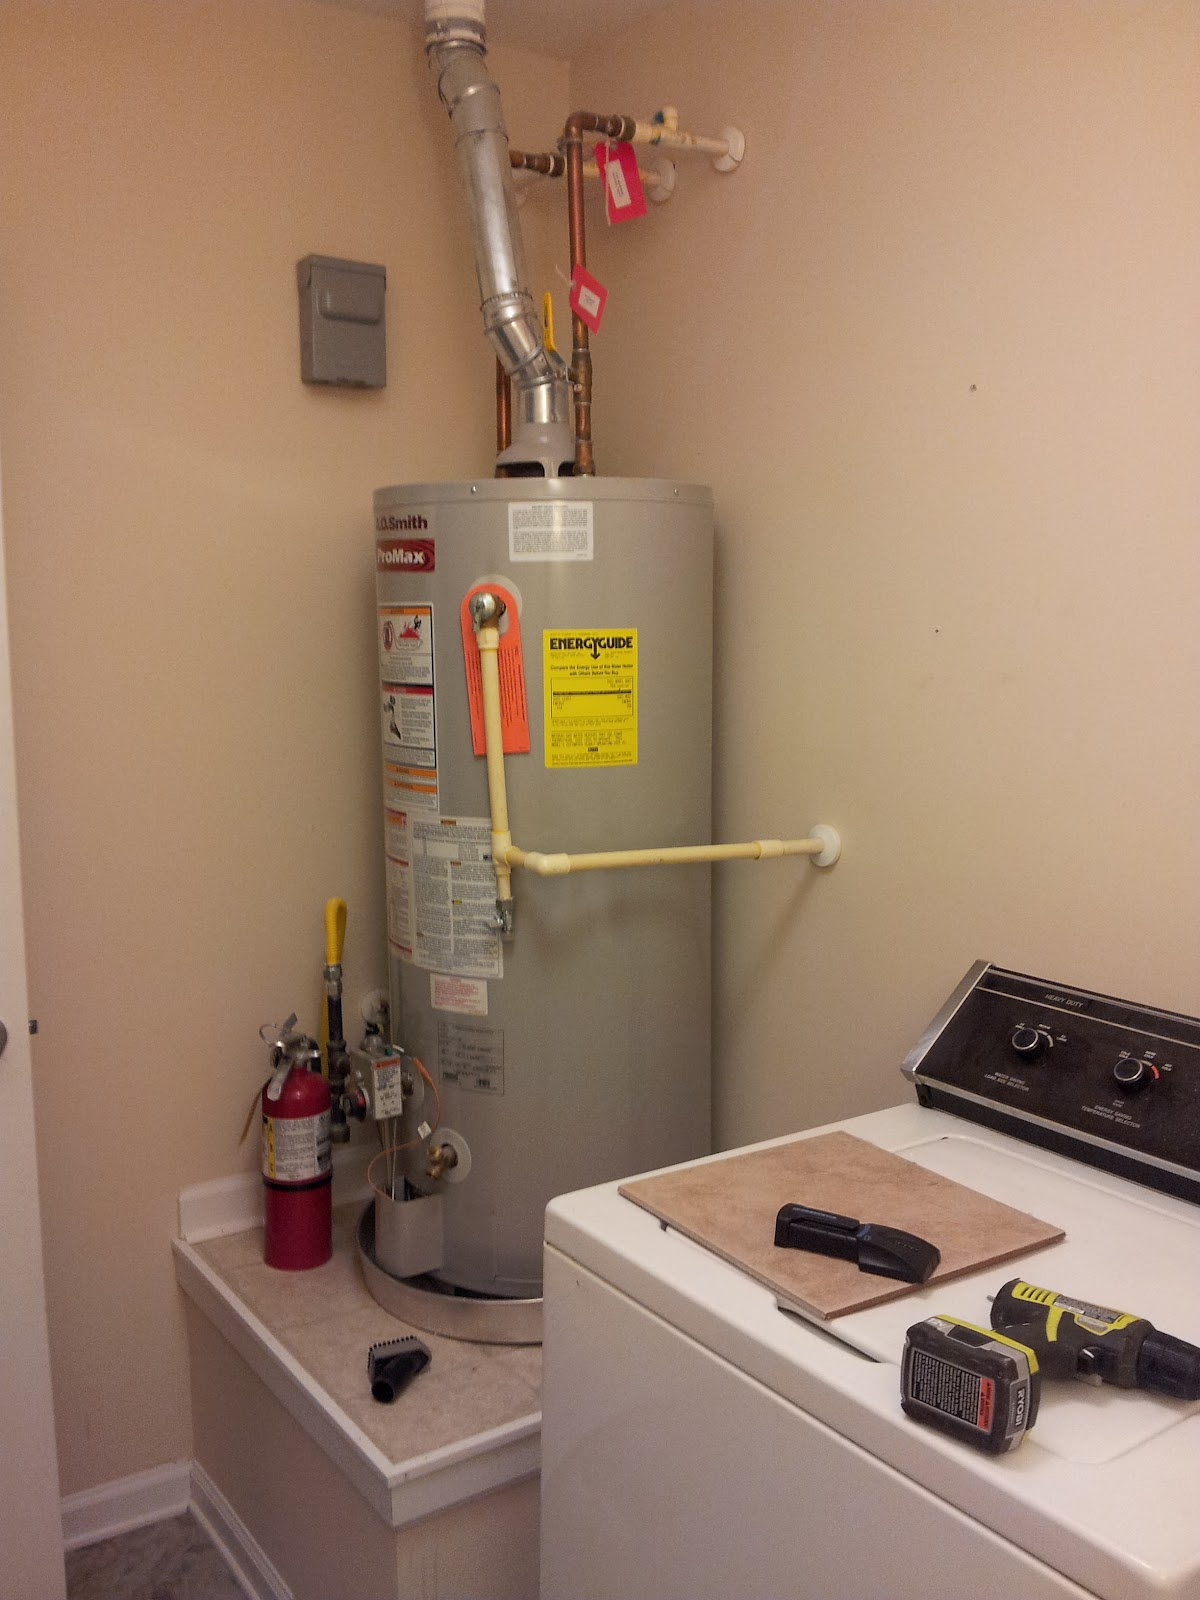 Duo ventures laundry room makeover so you get the idea not cute or functional our water heater is also conveniently located in our laundry room also not so cute solutioingenieria Images